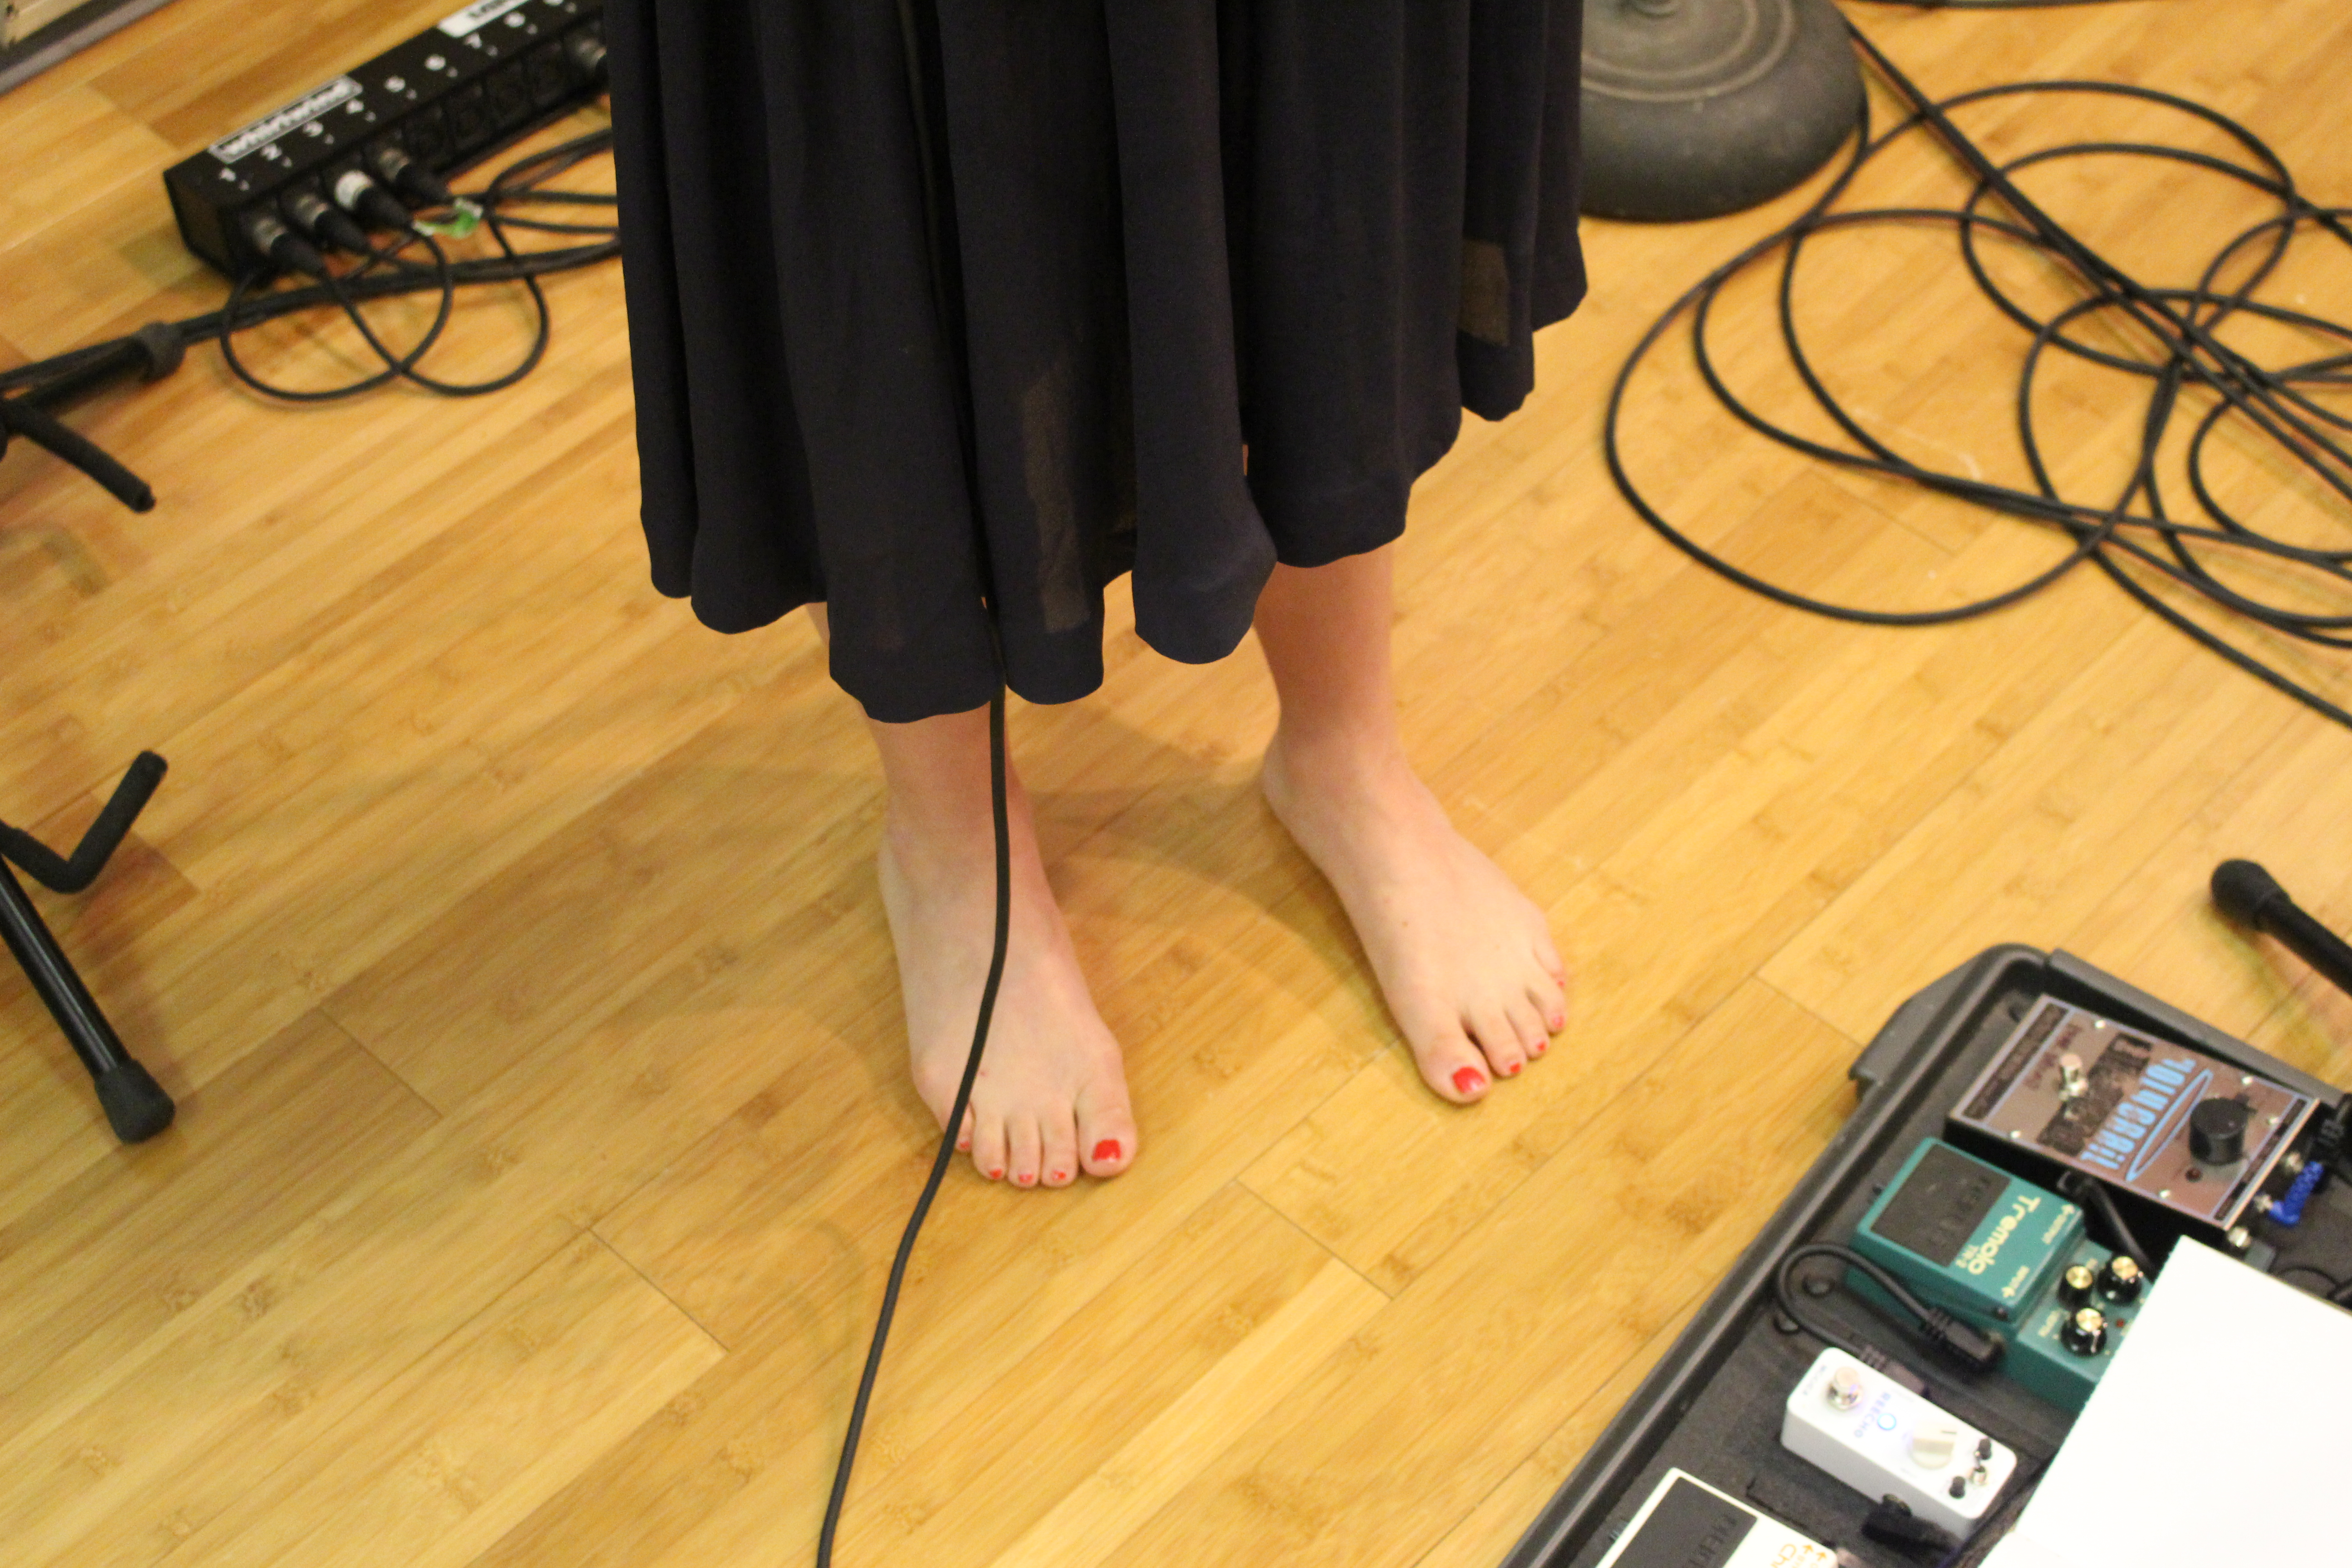 Lyla Foy's Feet on Echoes